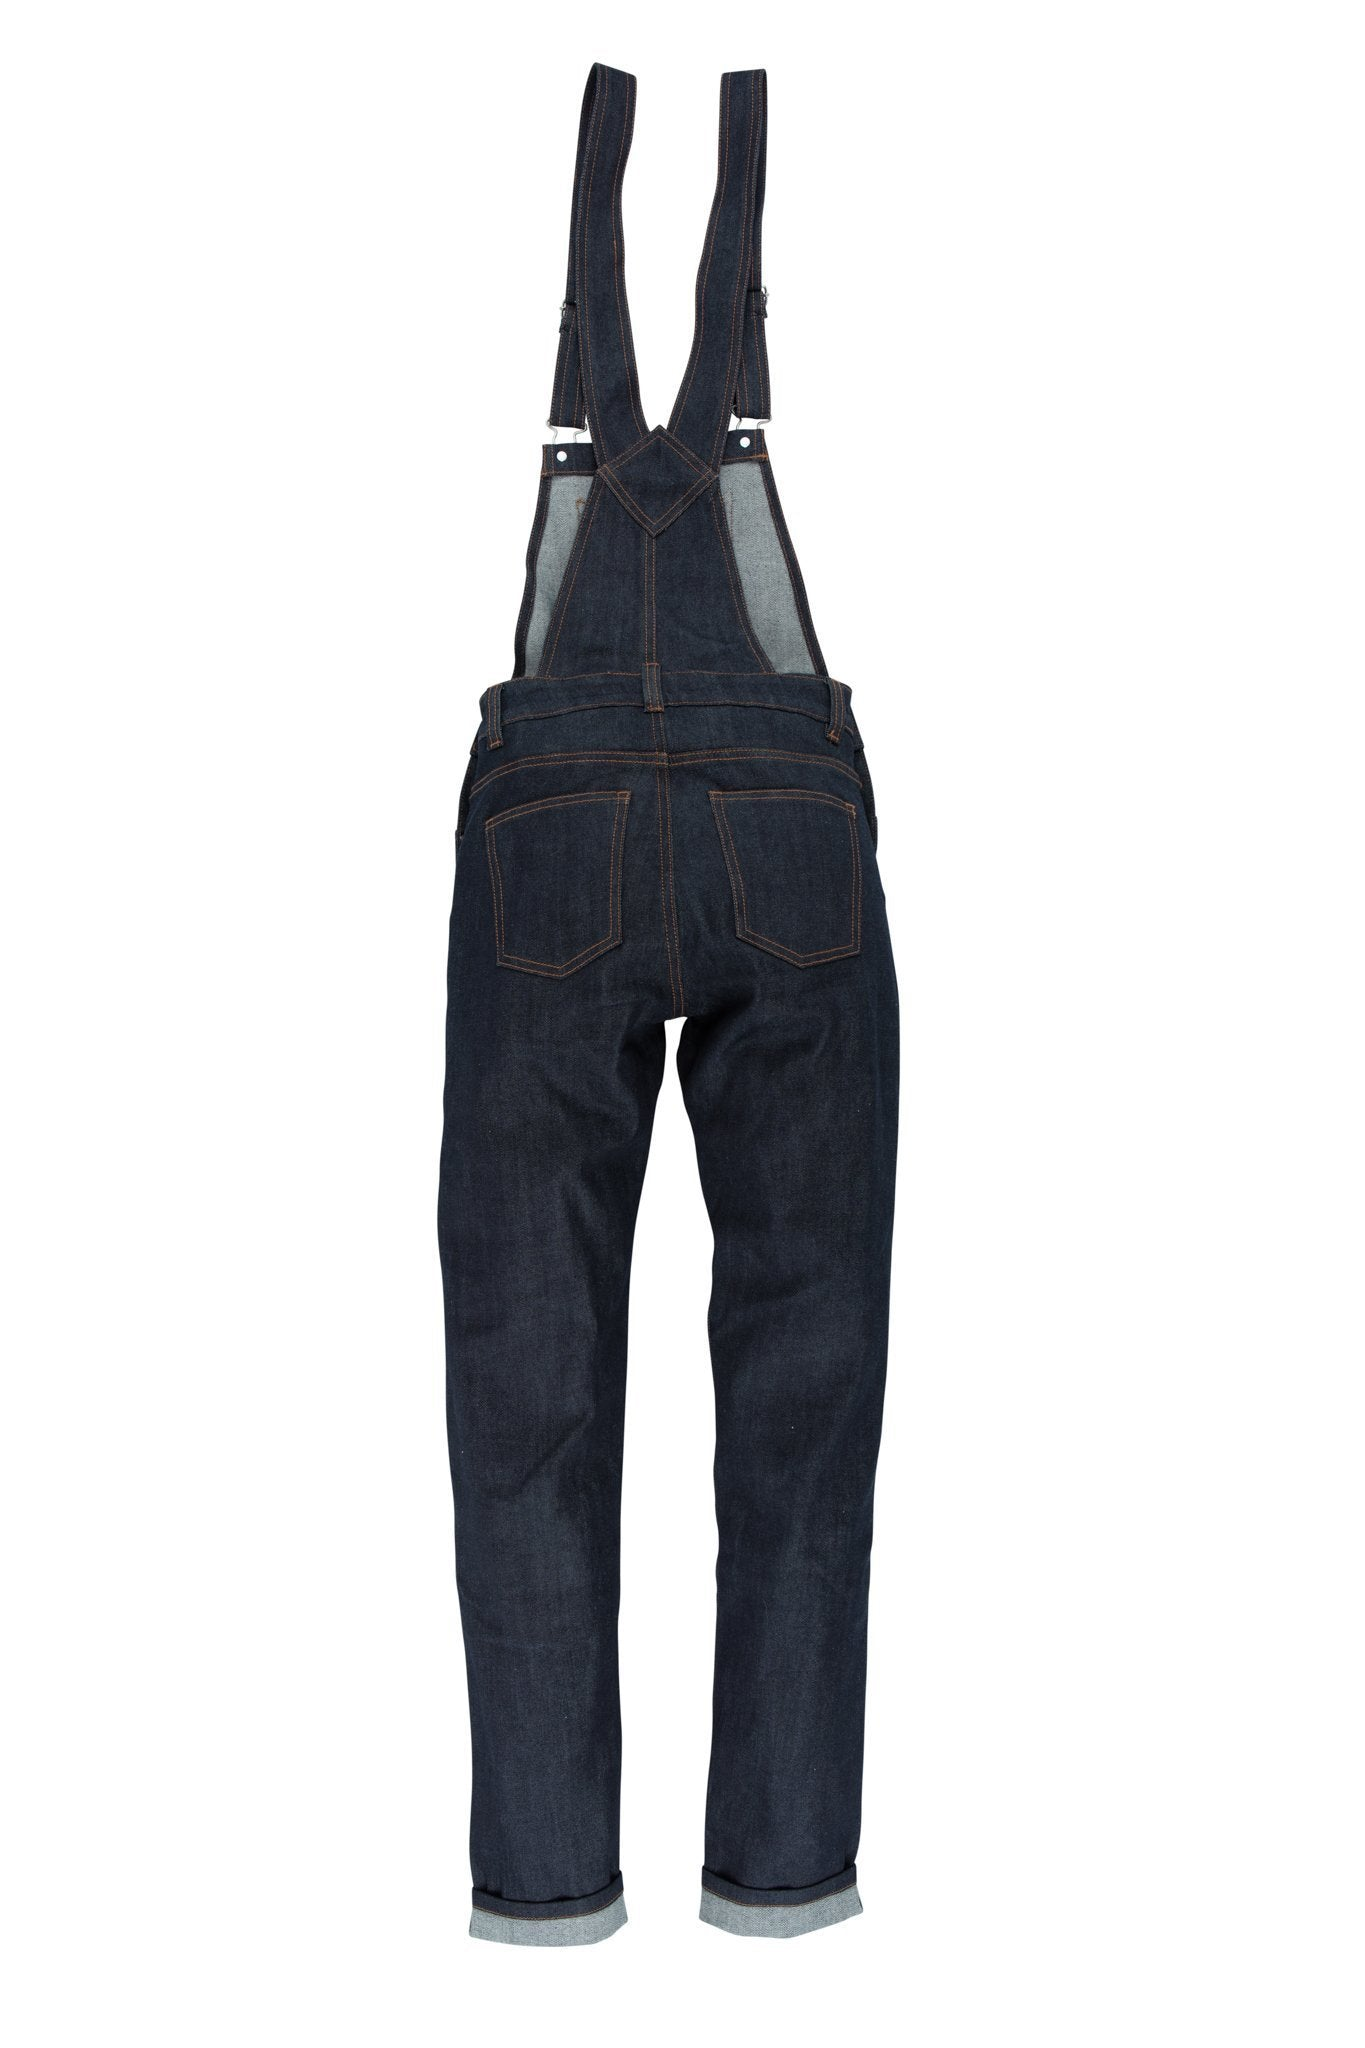 Resurgence Gear Inc. - Resurgence Gear® Ladies Dungarees Raw Selvedge Protective Motorcycle Regular Cut Jean - Ladies Trousers - Salt Flats Clothing